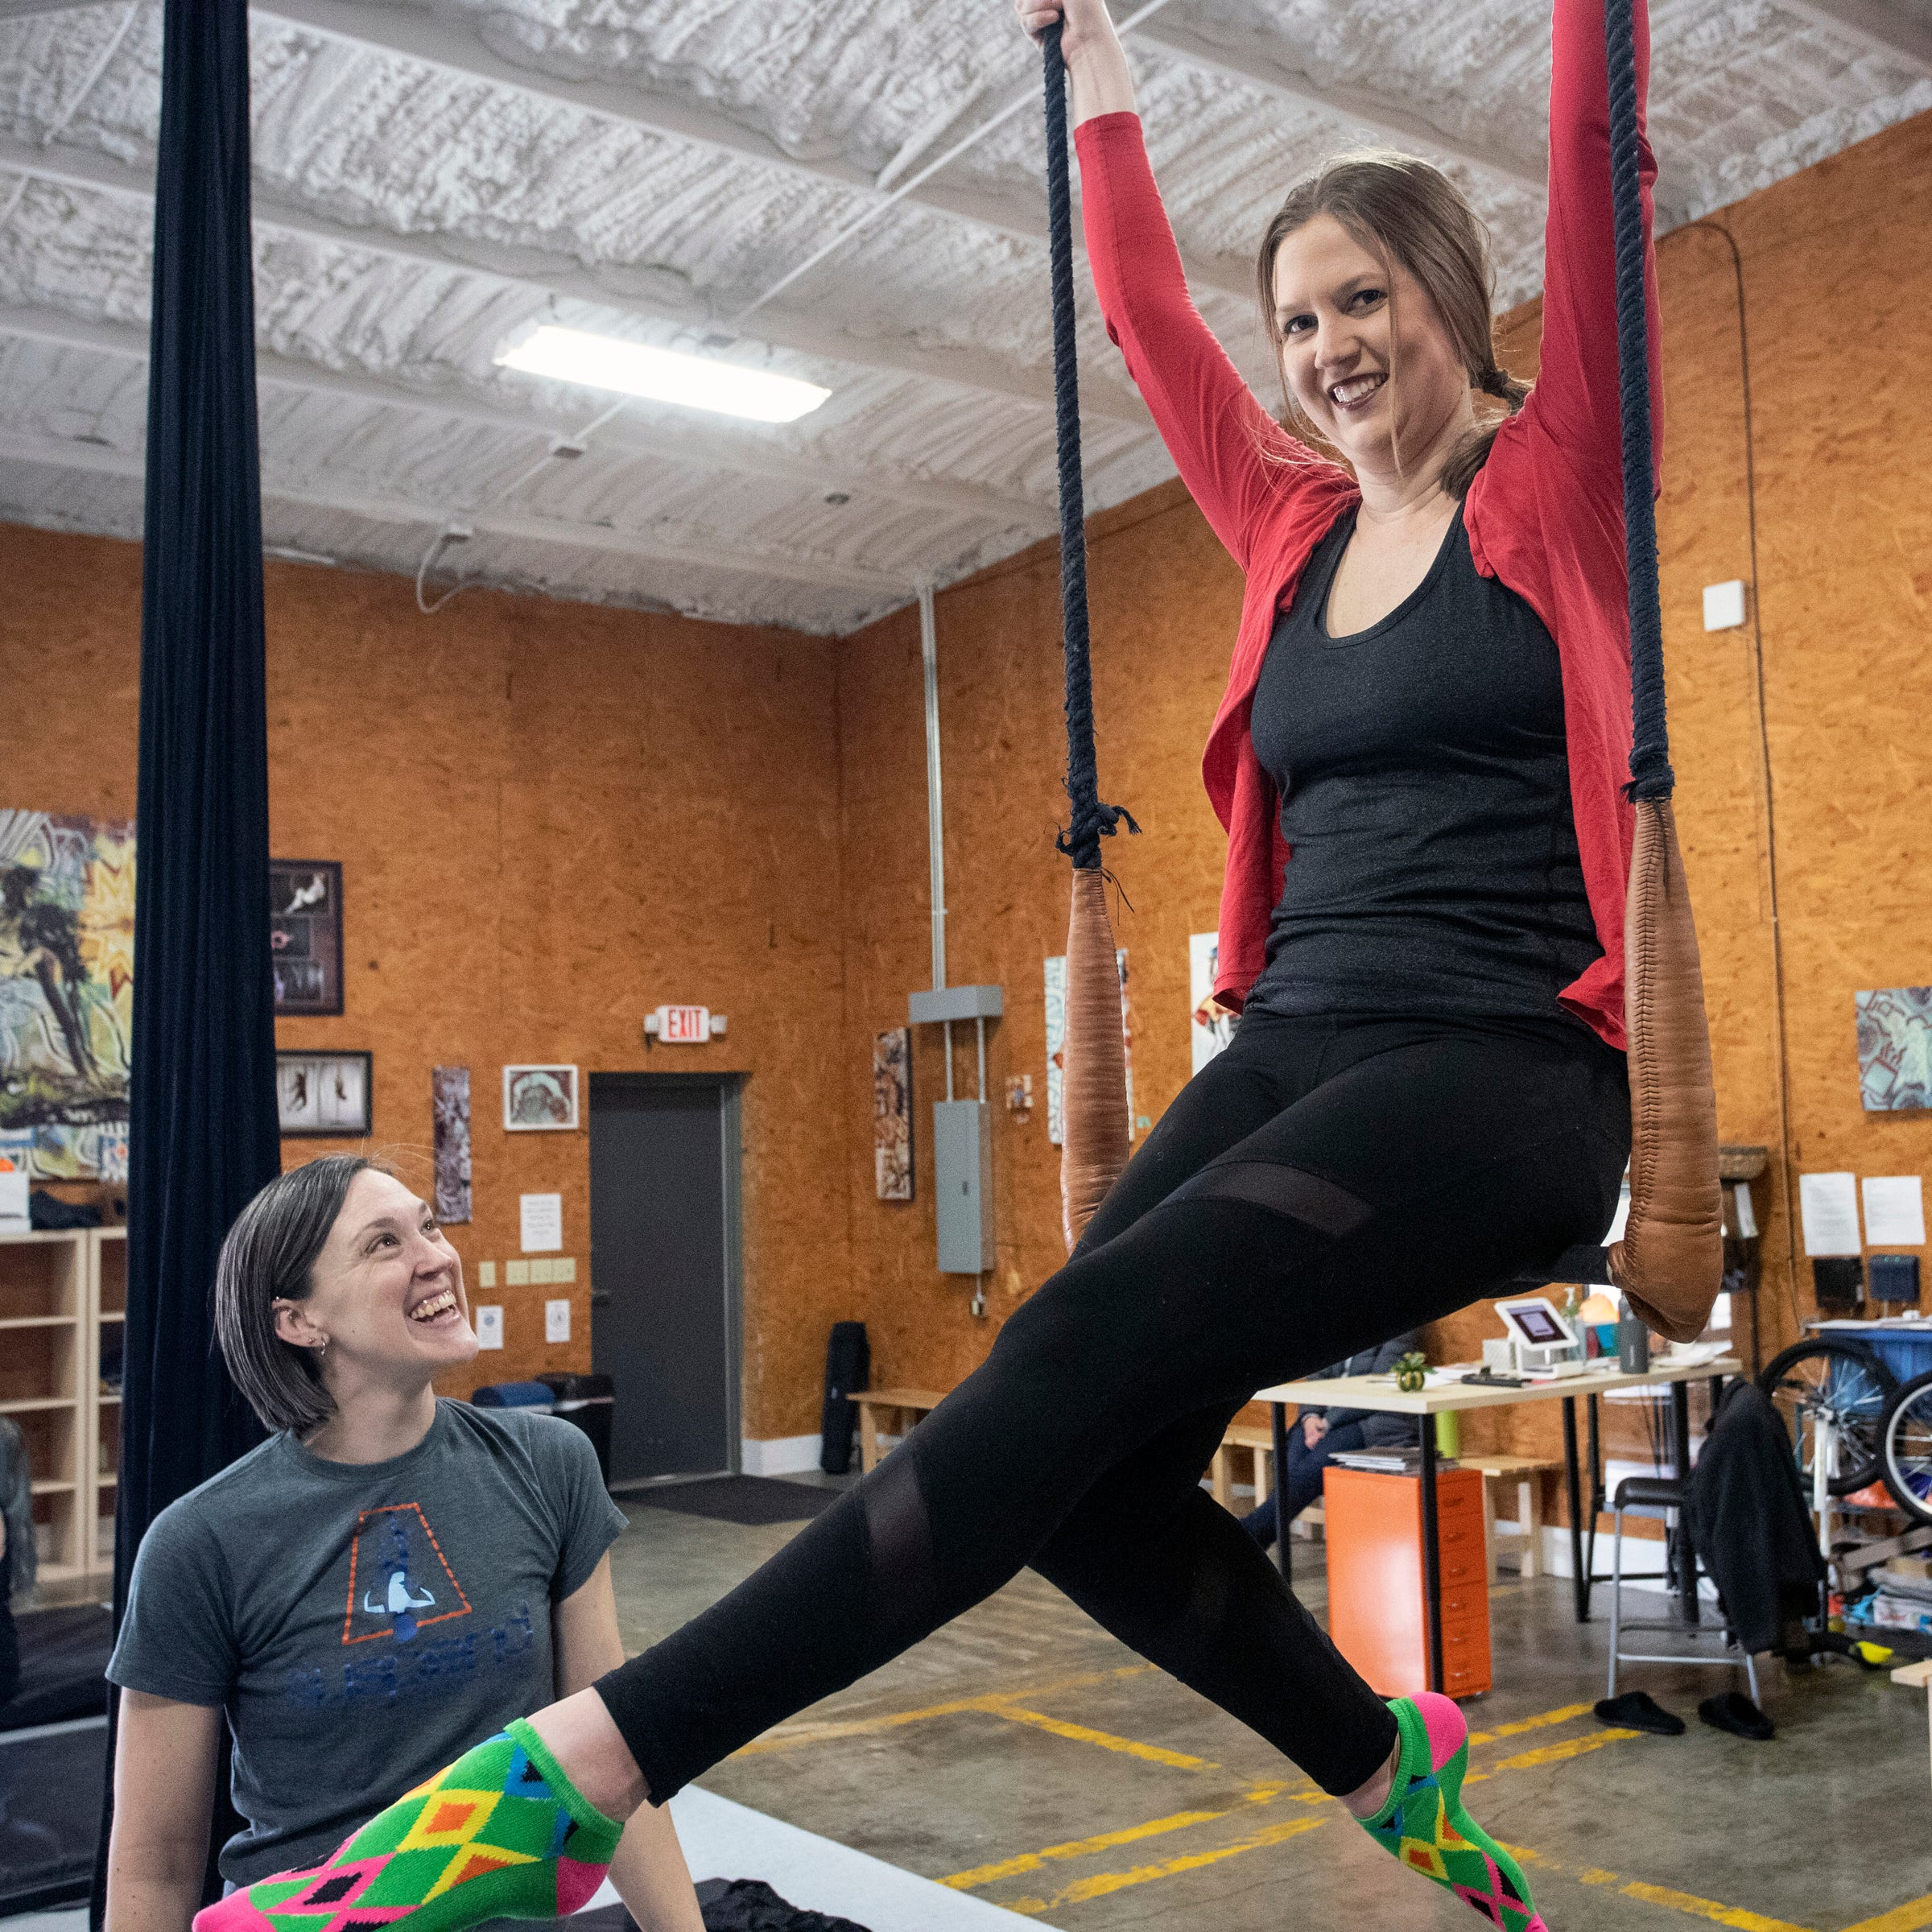 Want to run away and join the circus? Well you can at this Louisville gym